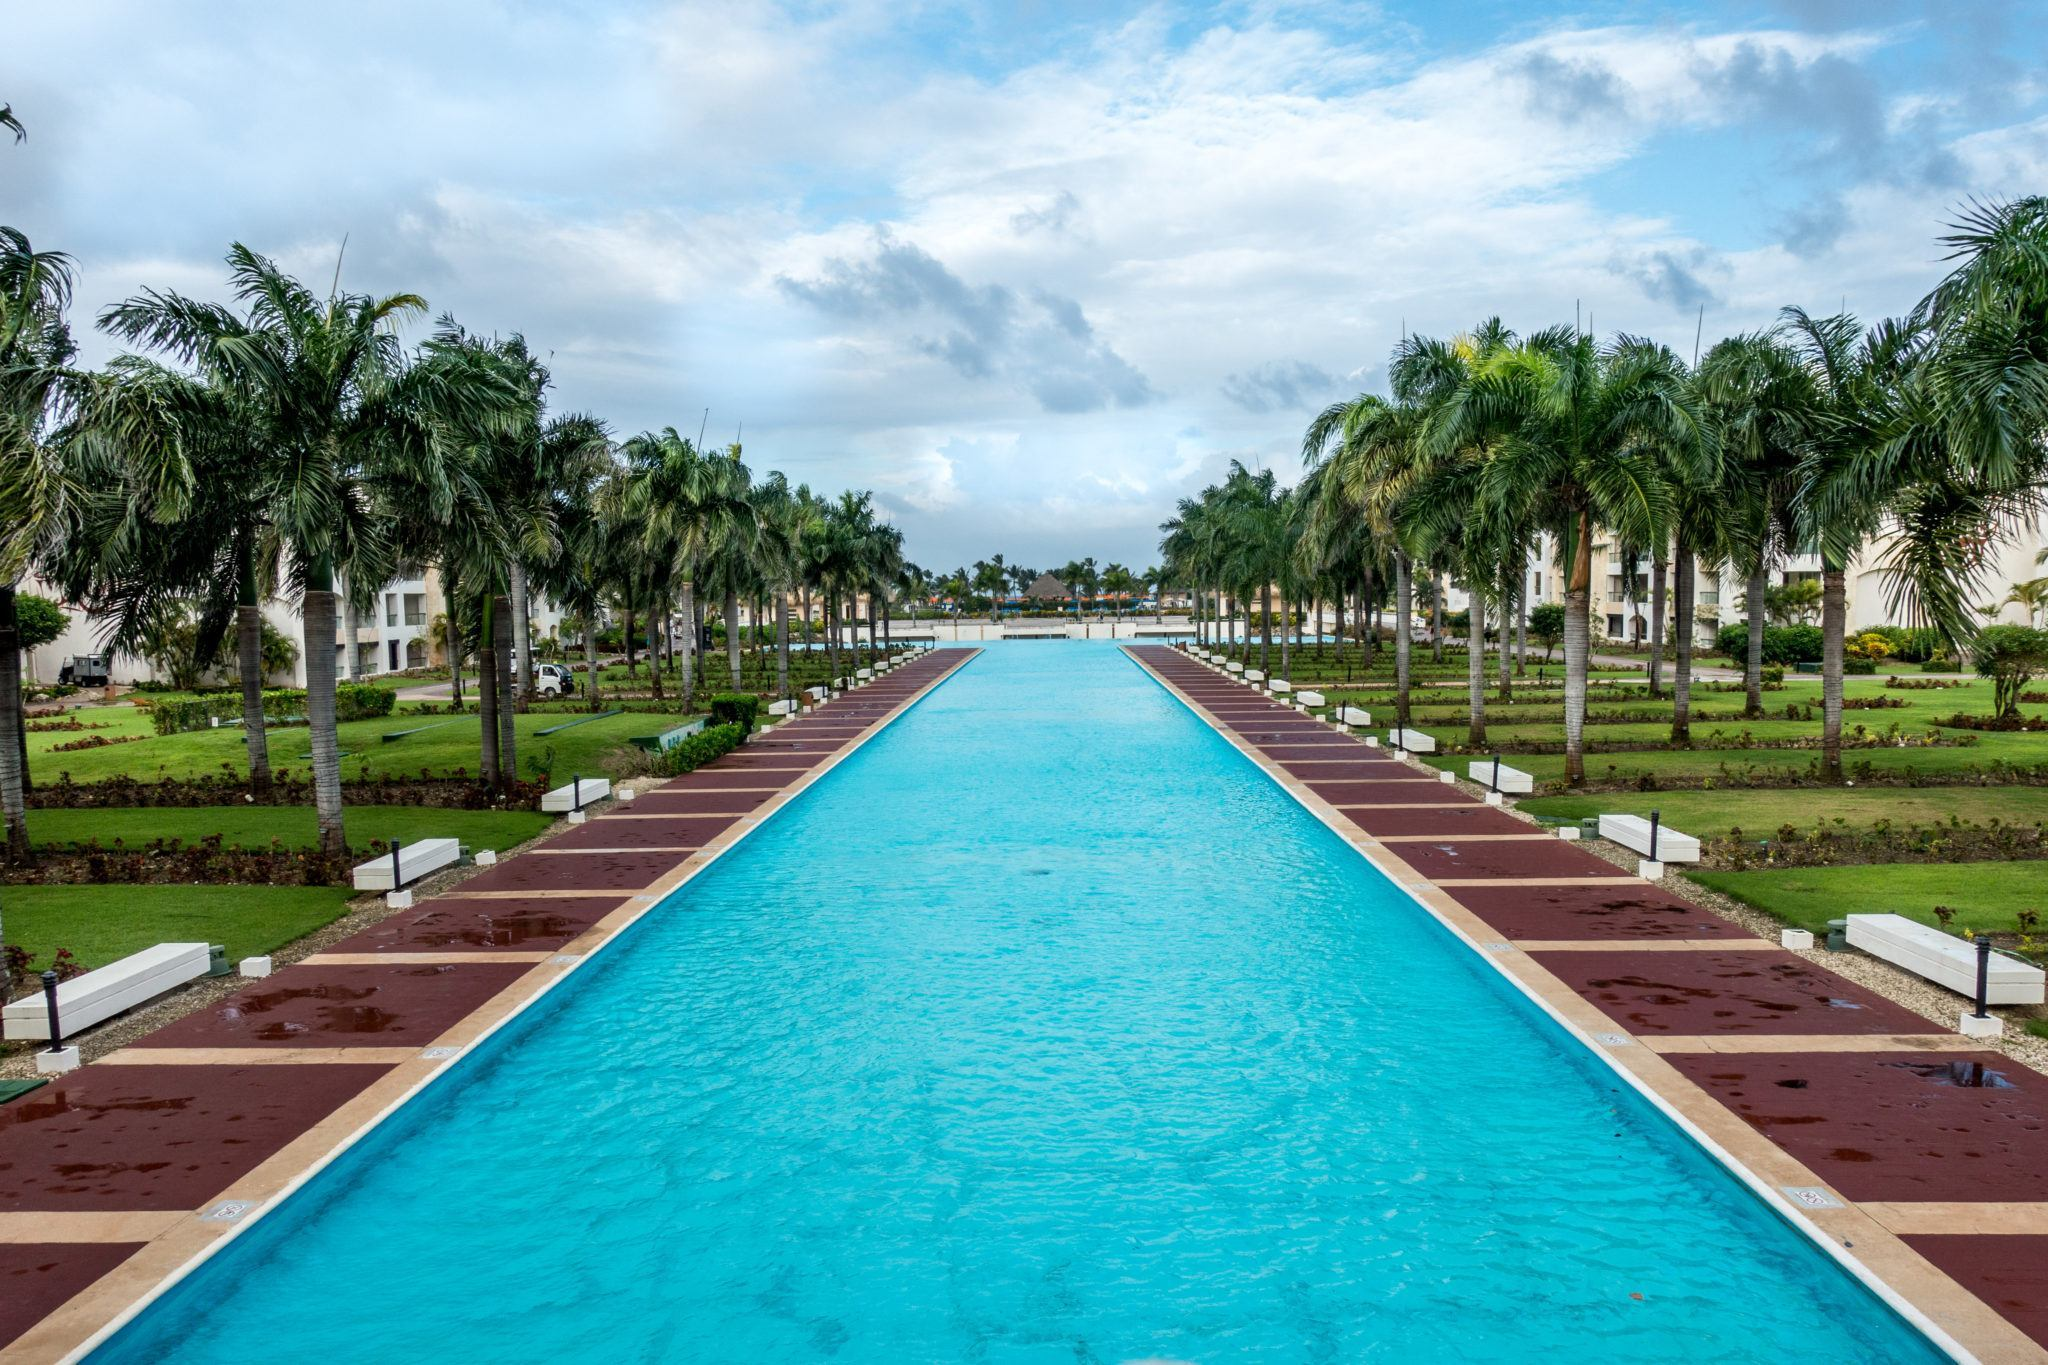 Pool lined with palm trees in Punta Cana Dominican Republic